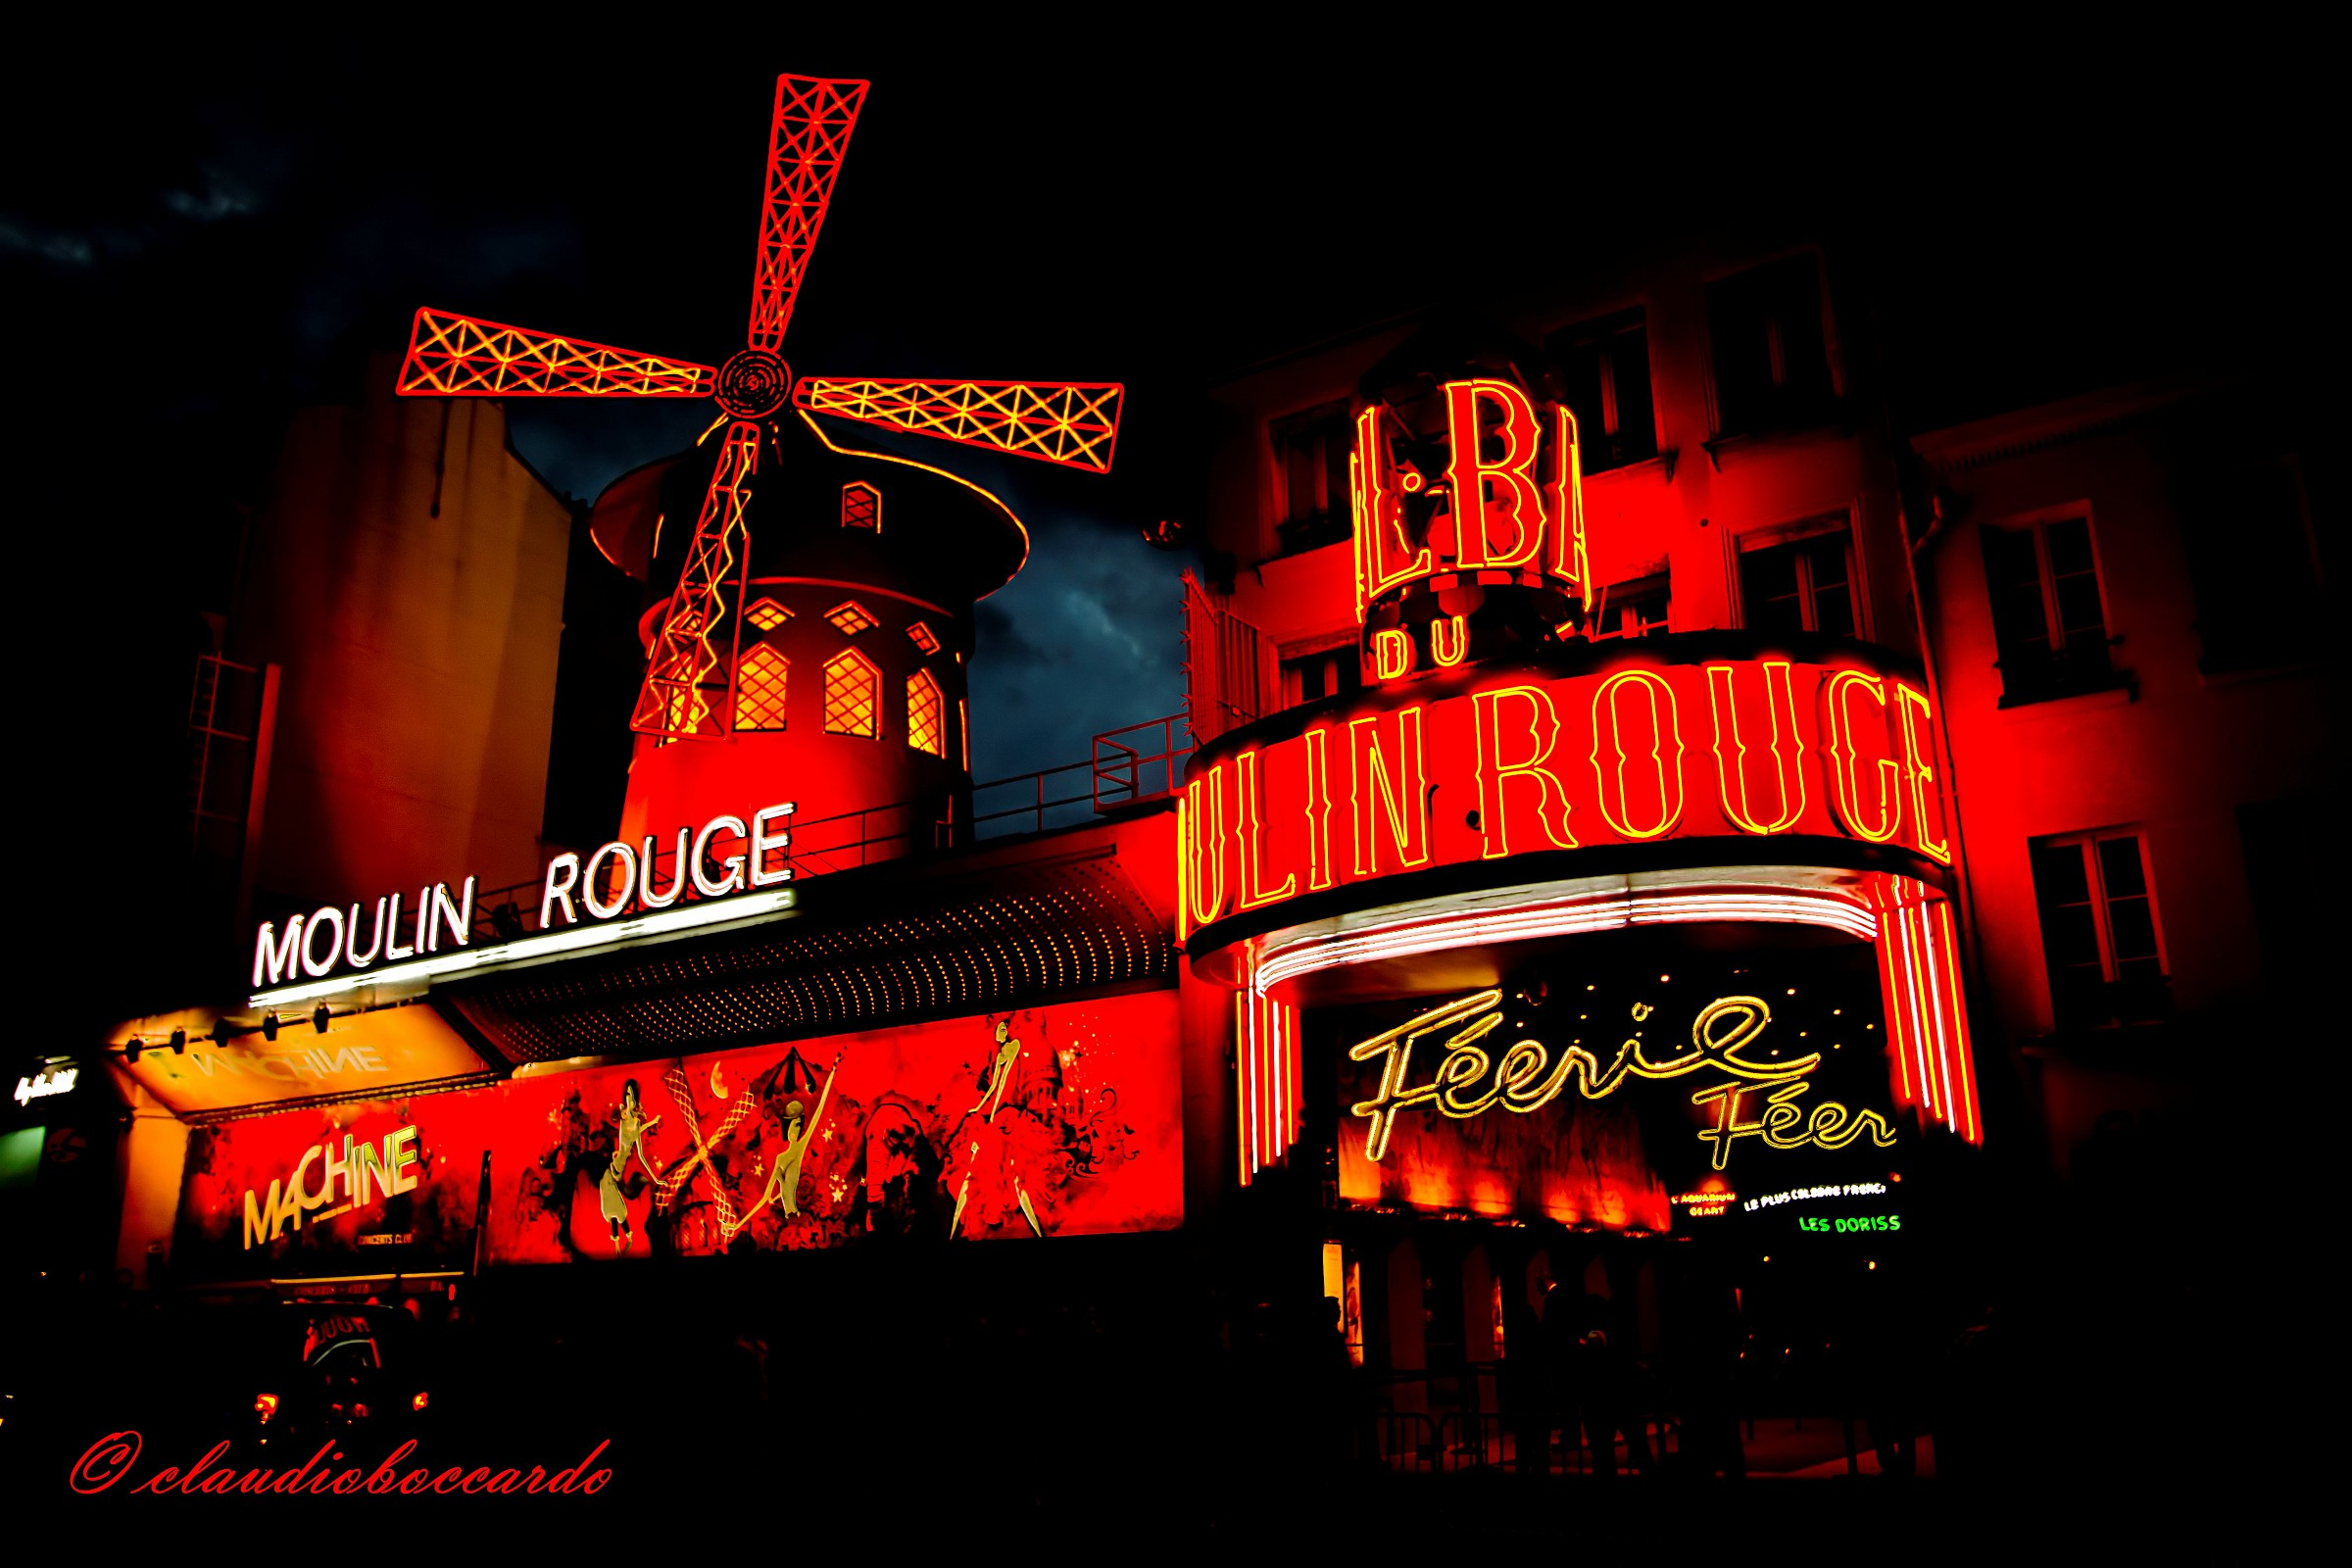 Moulin Rouge by night...